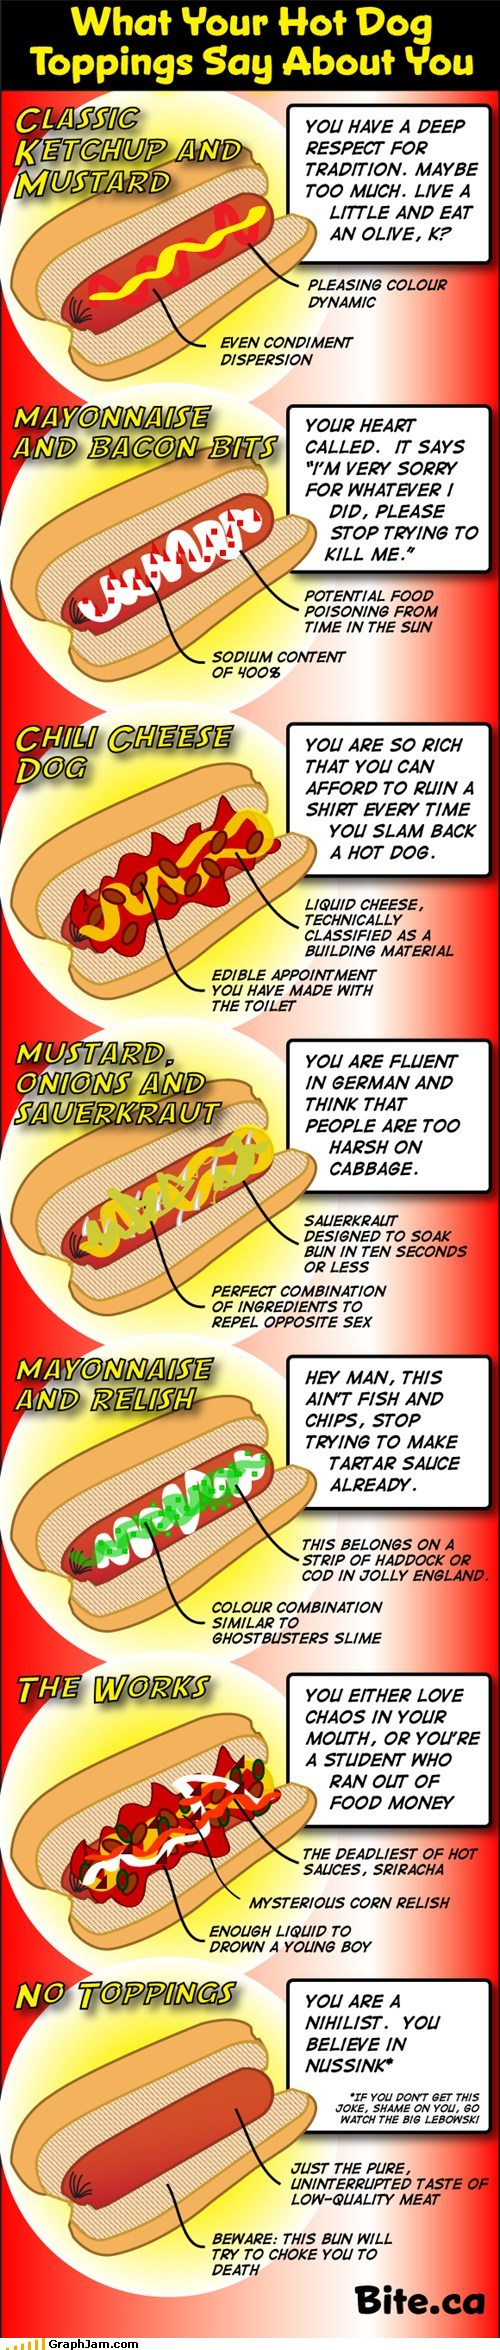 Funny-graphs-what-your-hot-dog-toppings-say-about-you